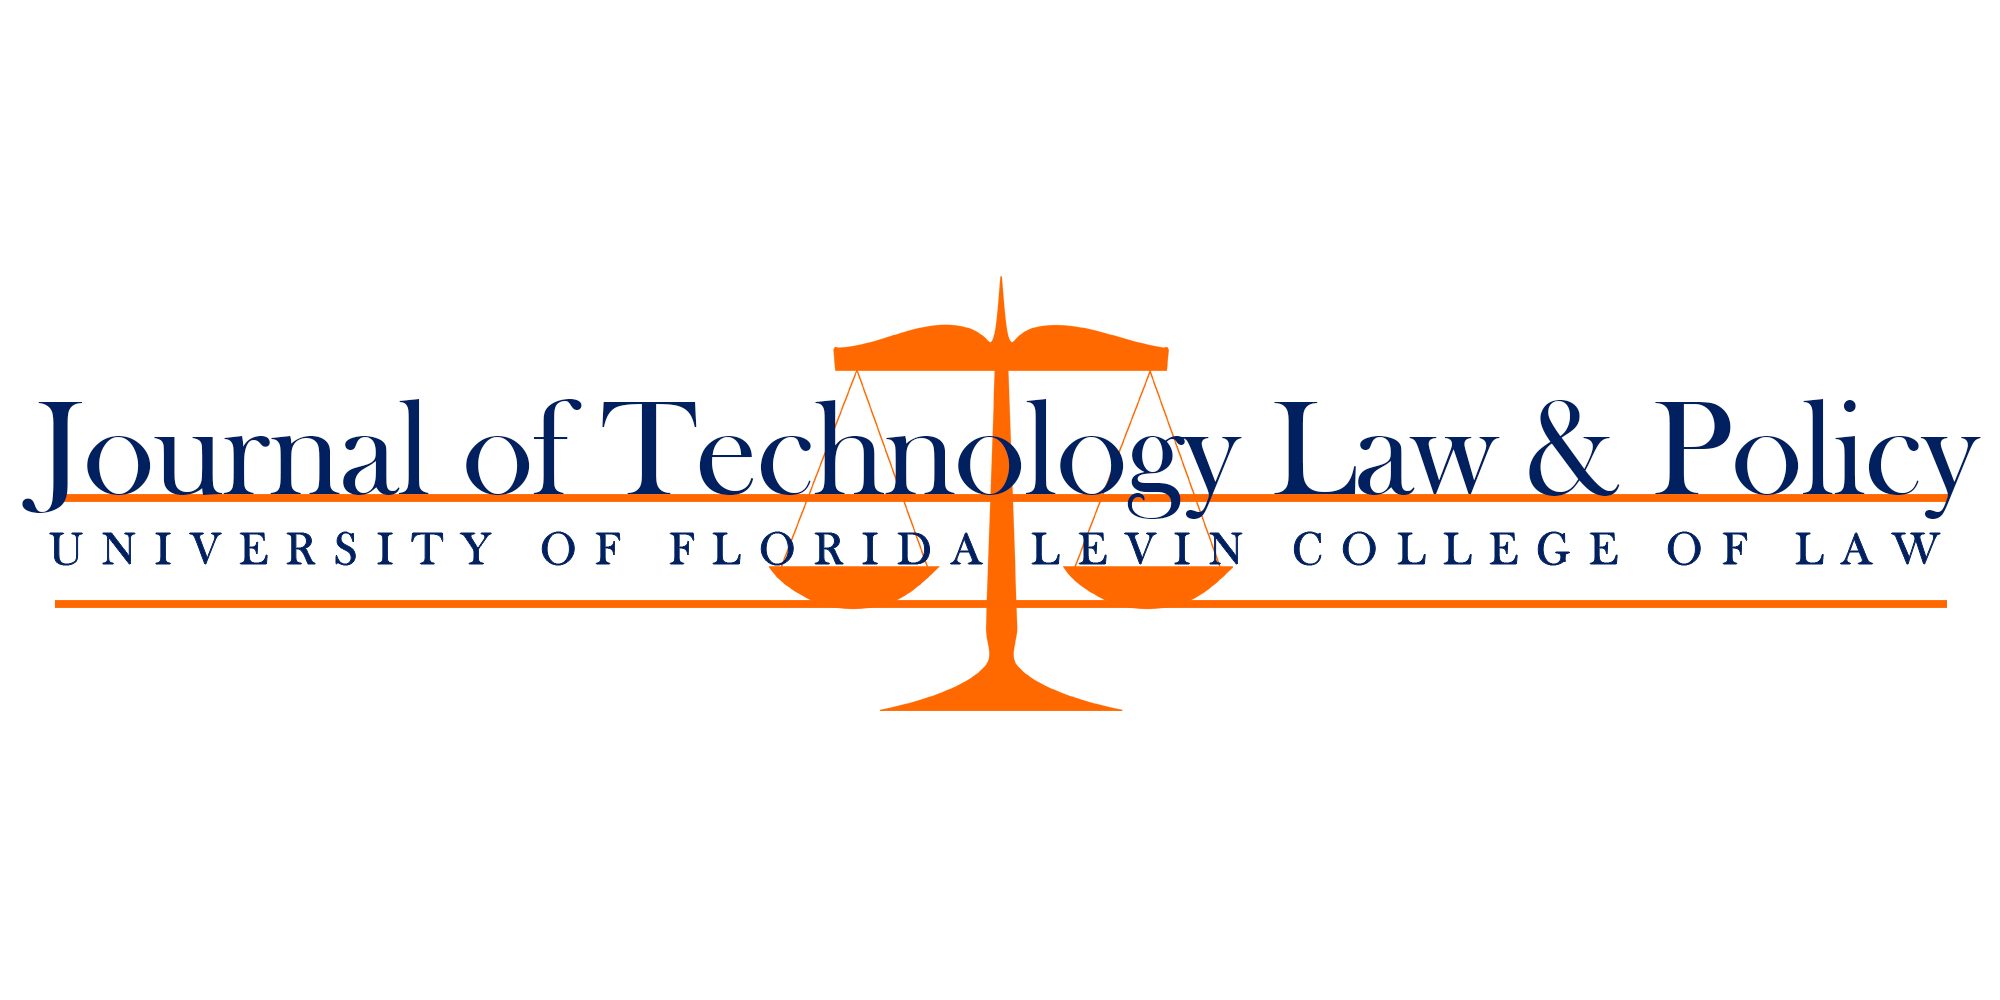 Journal of Technology Law & Policy